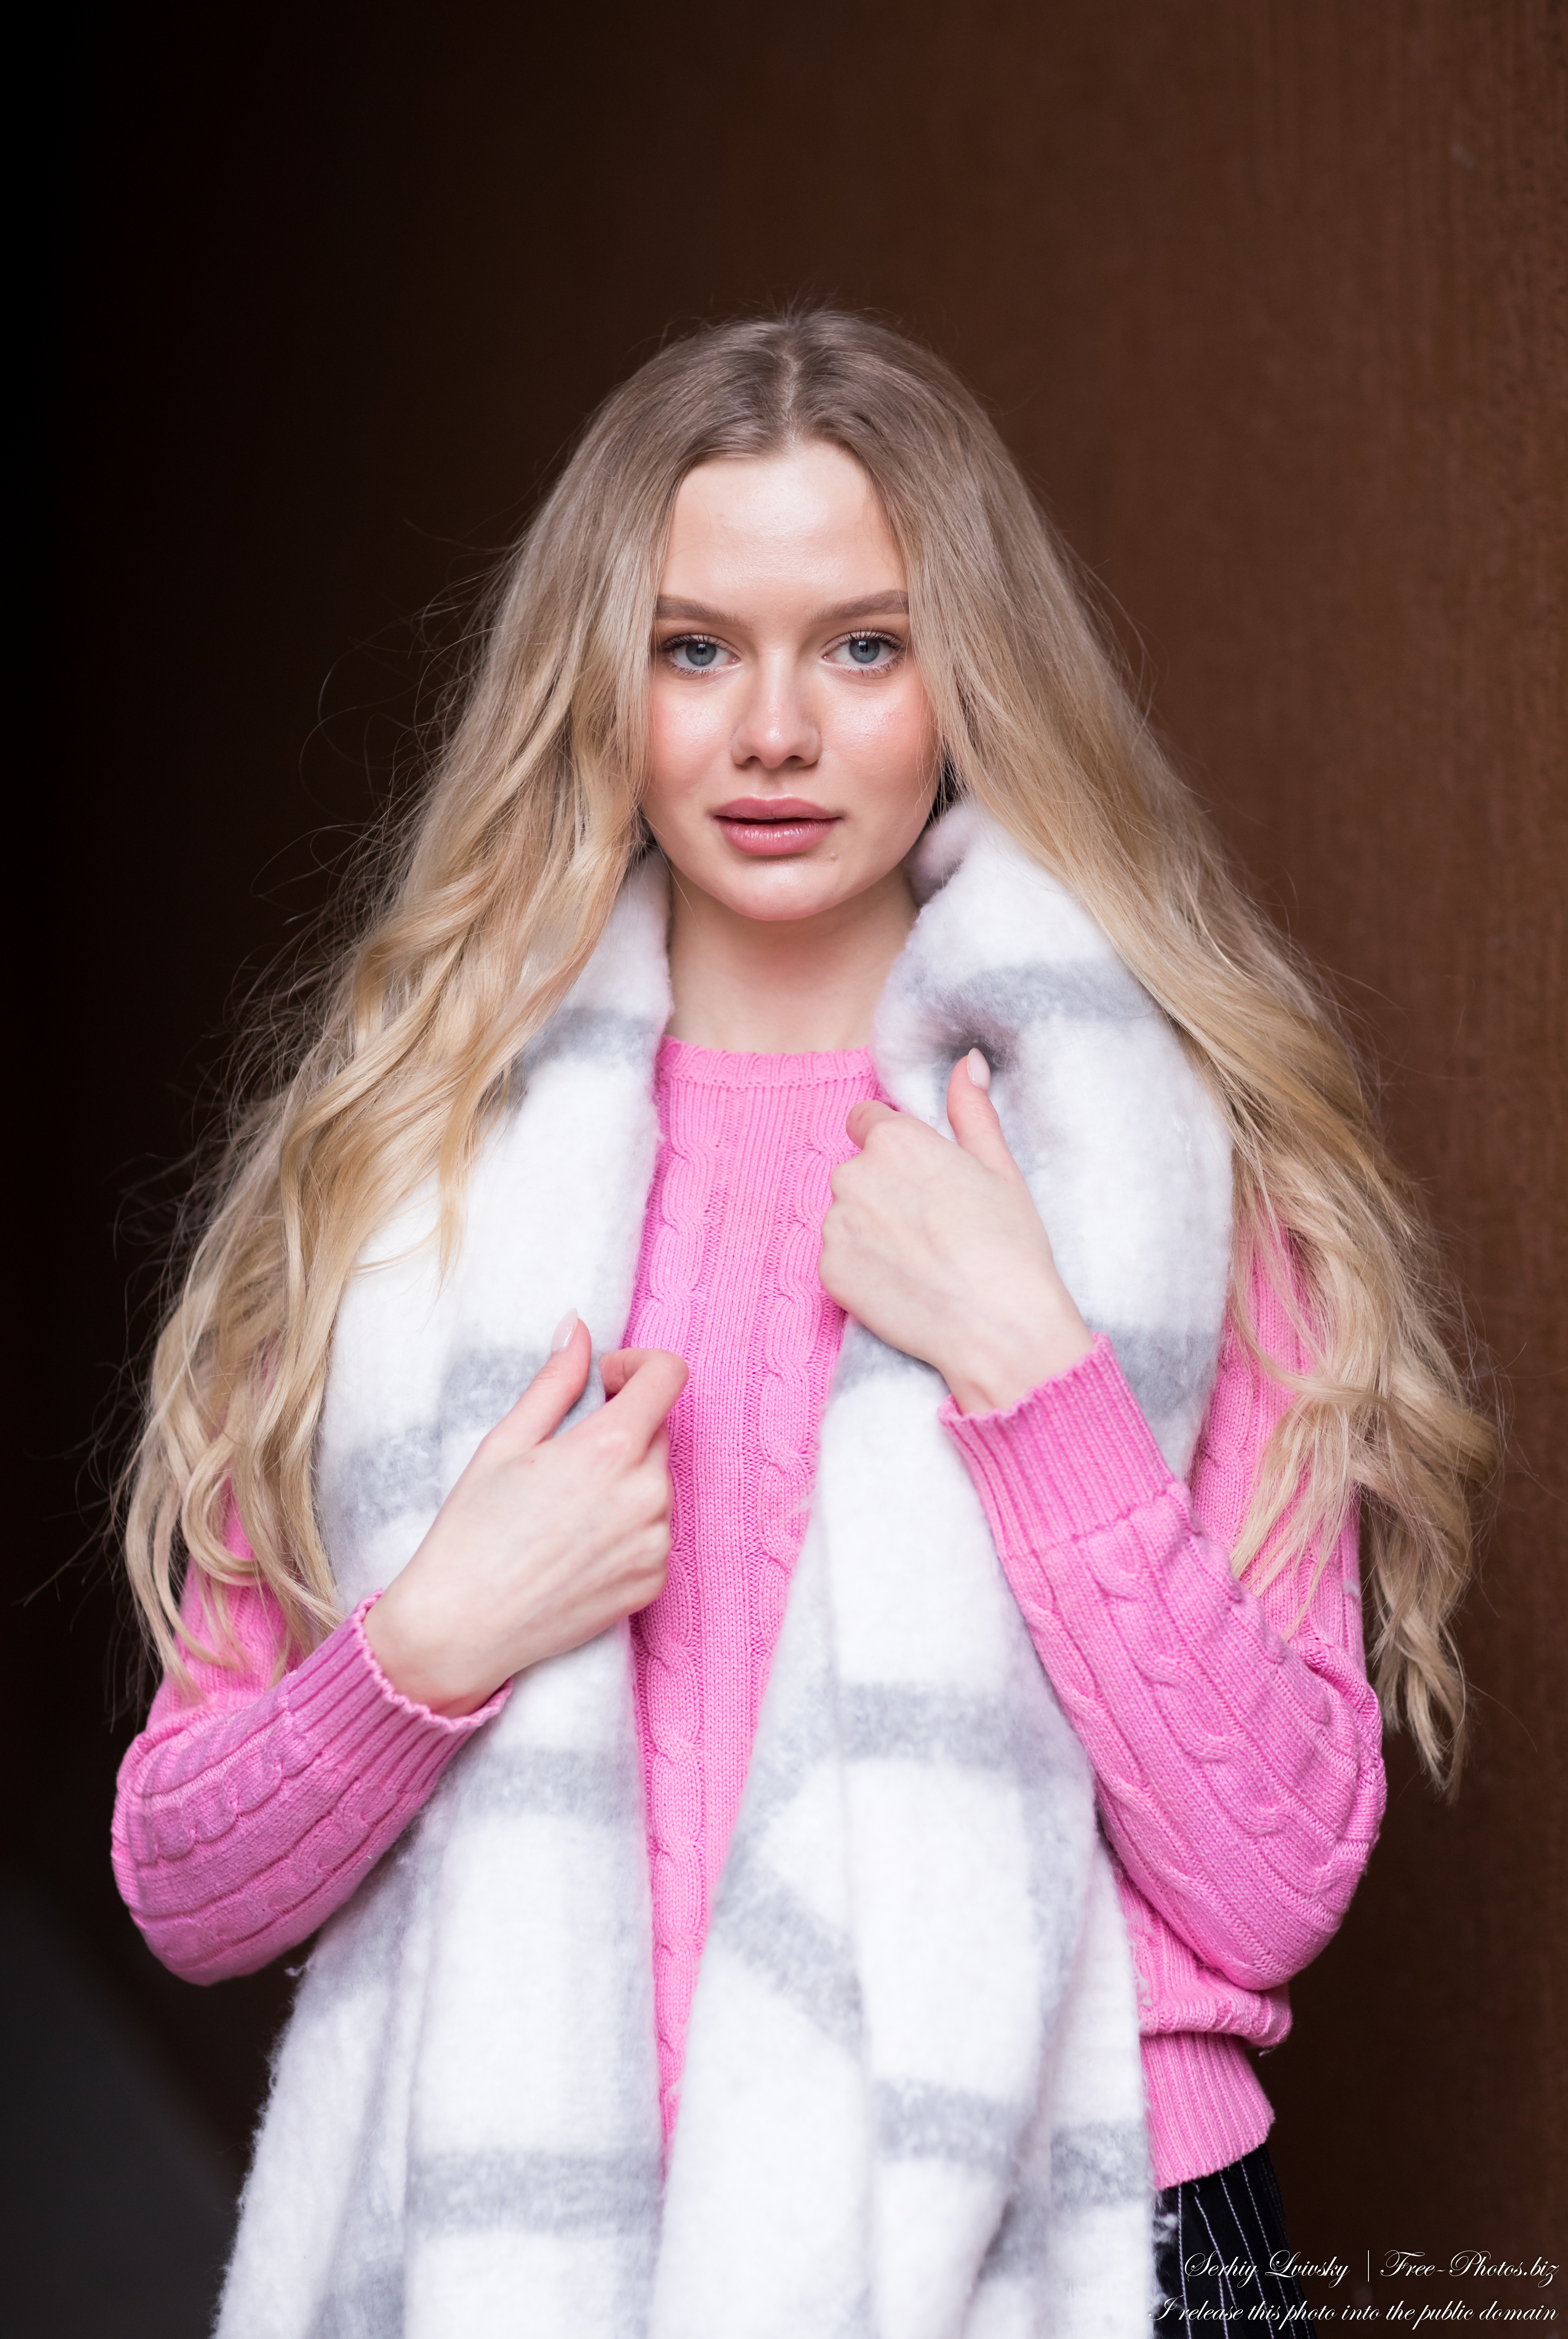 oksana_a_19-year-old_natural_blonde_girl_photographed_by_serhiy_lvivsky_in_march_2021_16